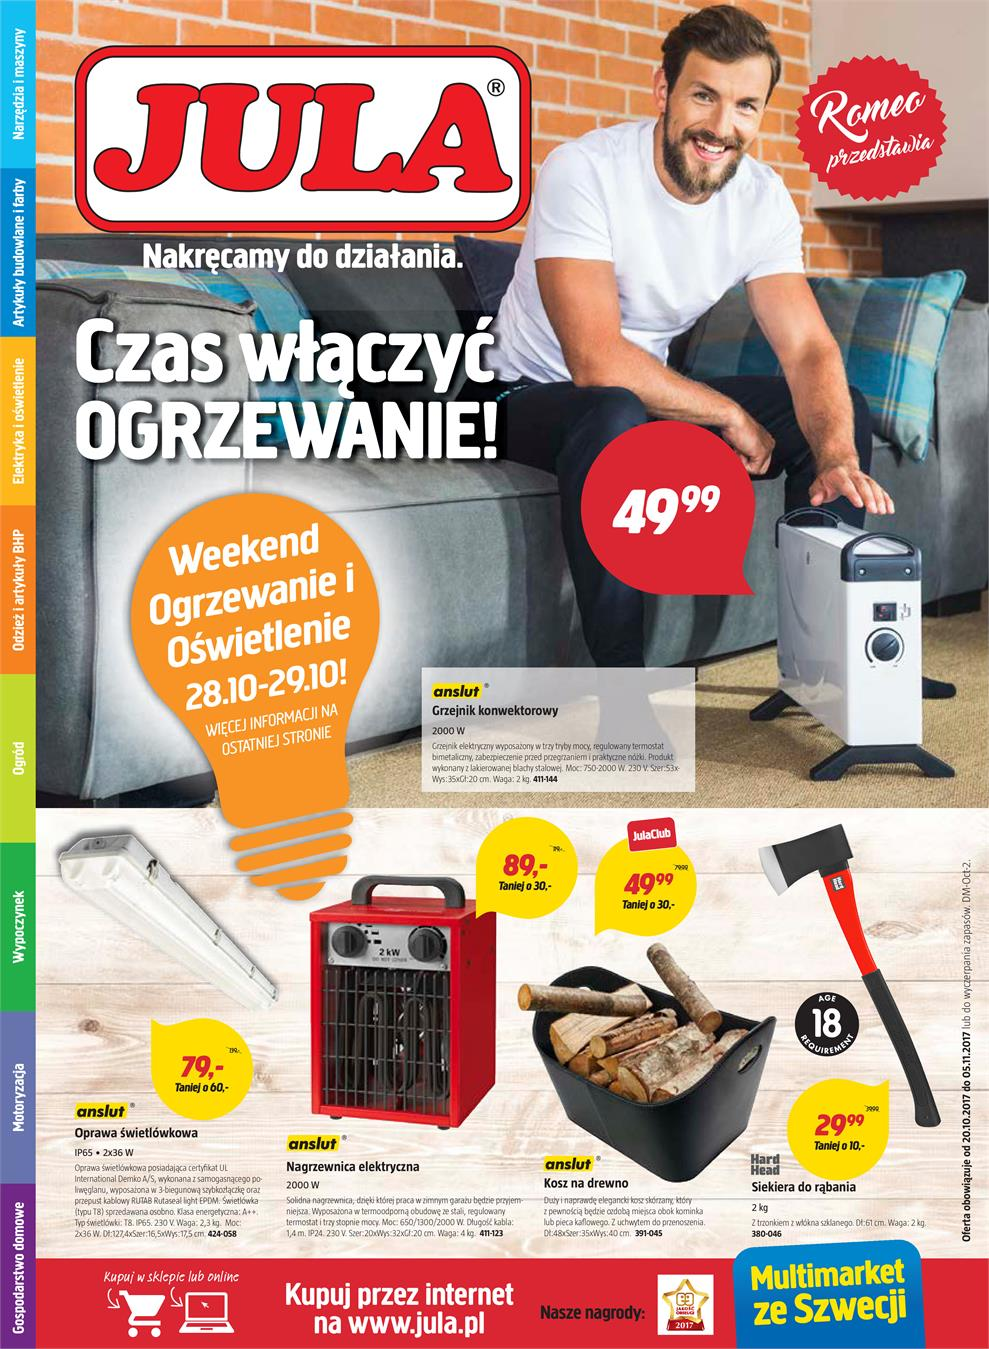 Gazetka Jula Poland Sp. z o.o. nr 0 od 2017-10-20 do 2017-11-05